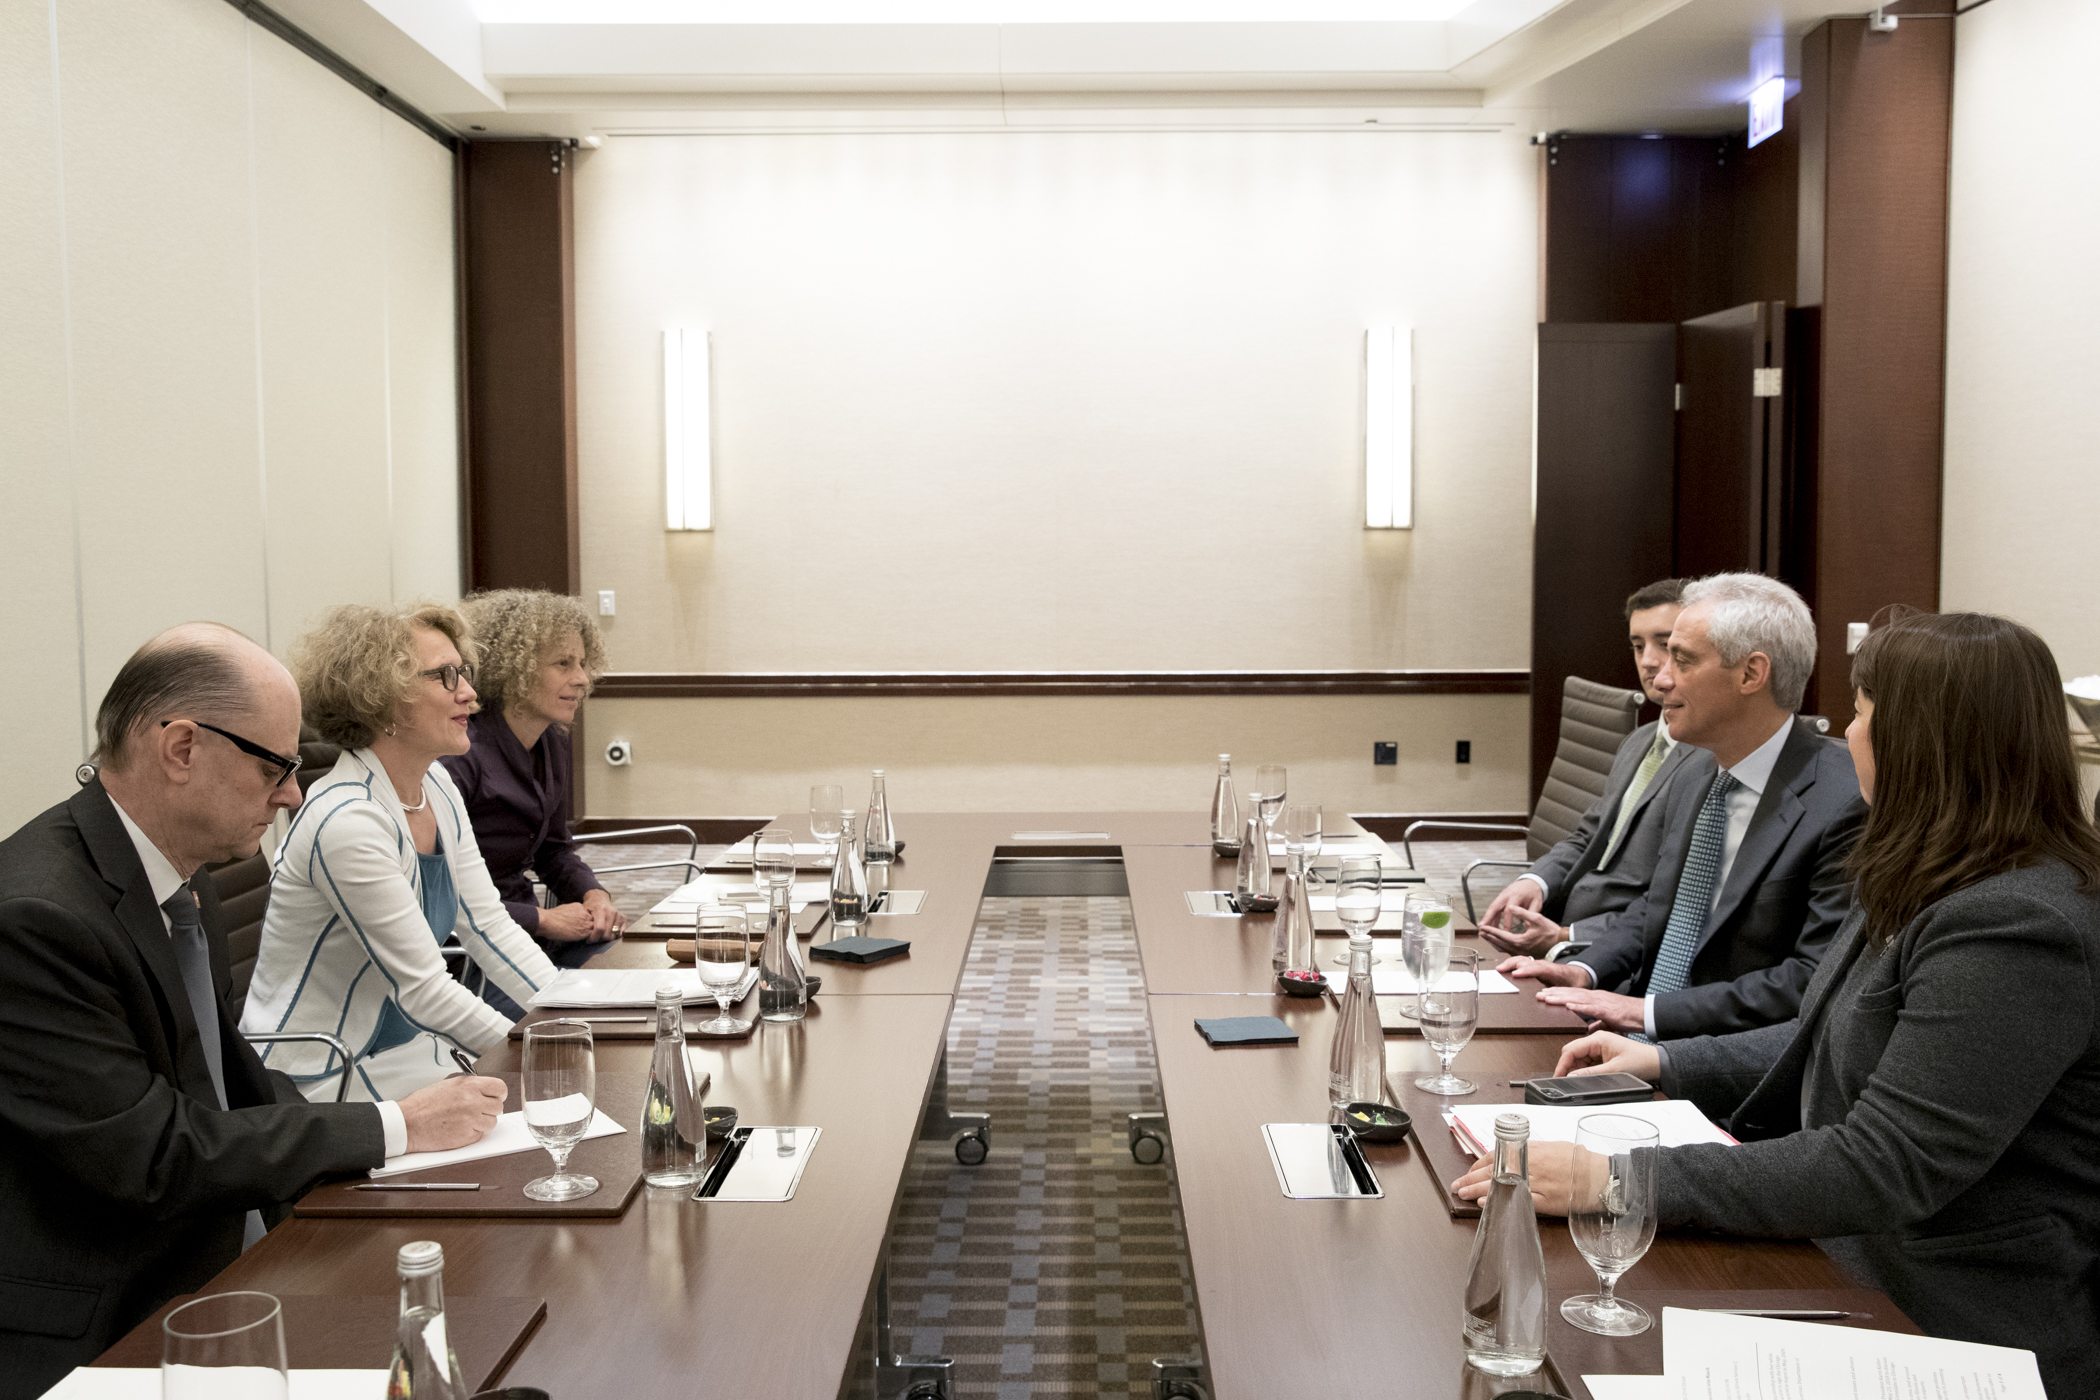 Bilateral meeting between Zurich Mayor Corine Mauch and Mayor Rahm Emanuel in Chicago